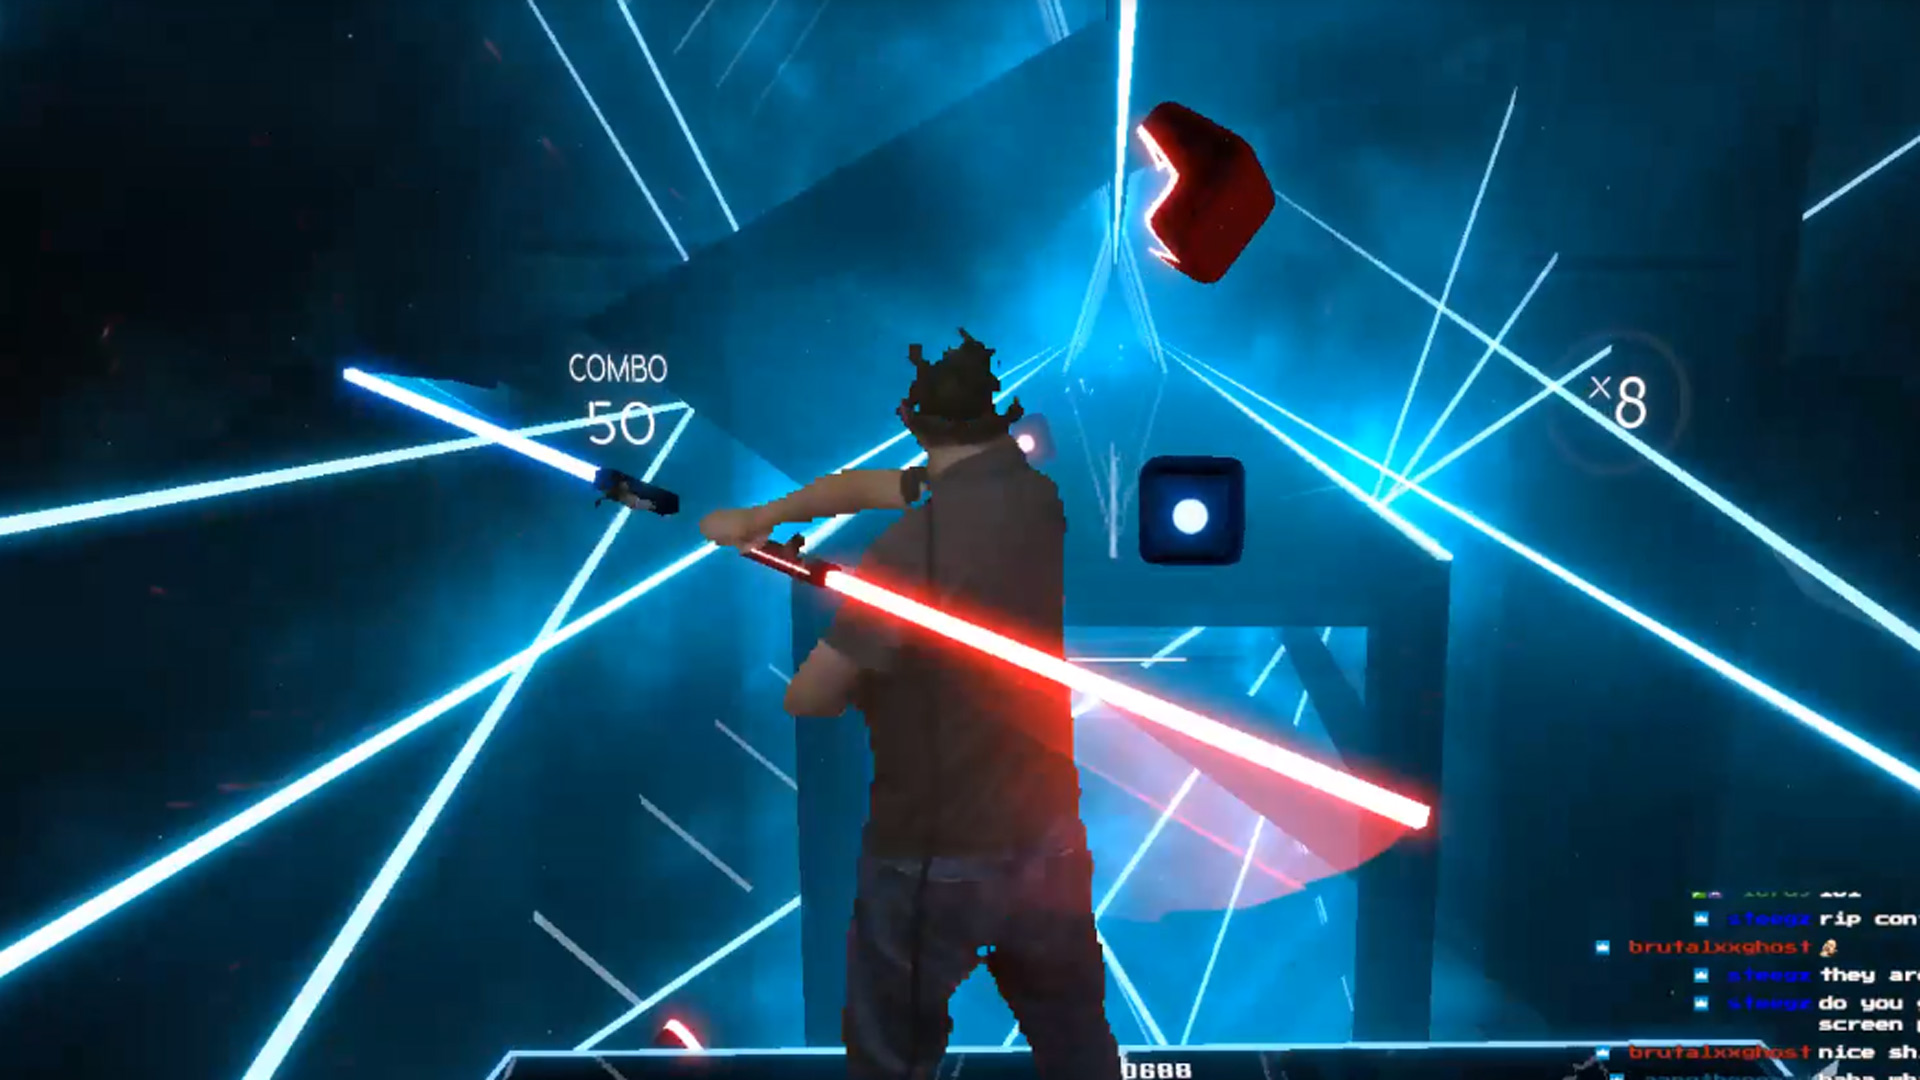 This Guy Modded Oculus Touch to Play 'Beat Saber' Darth Maul